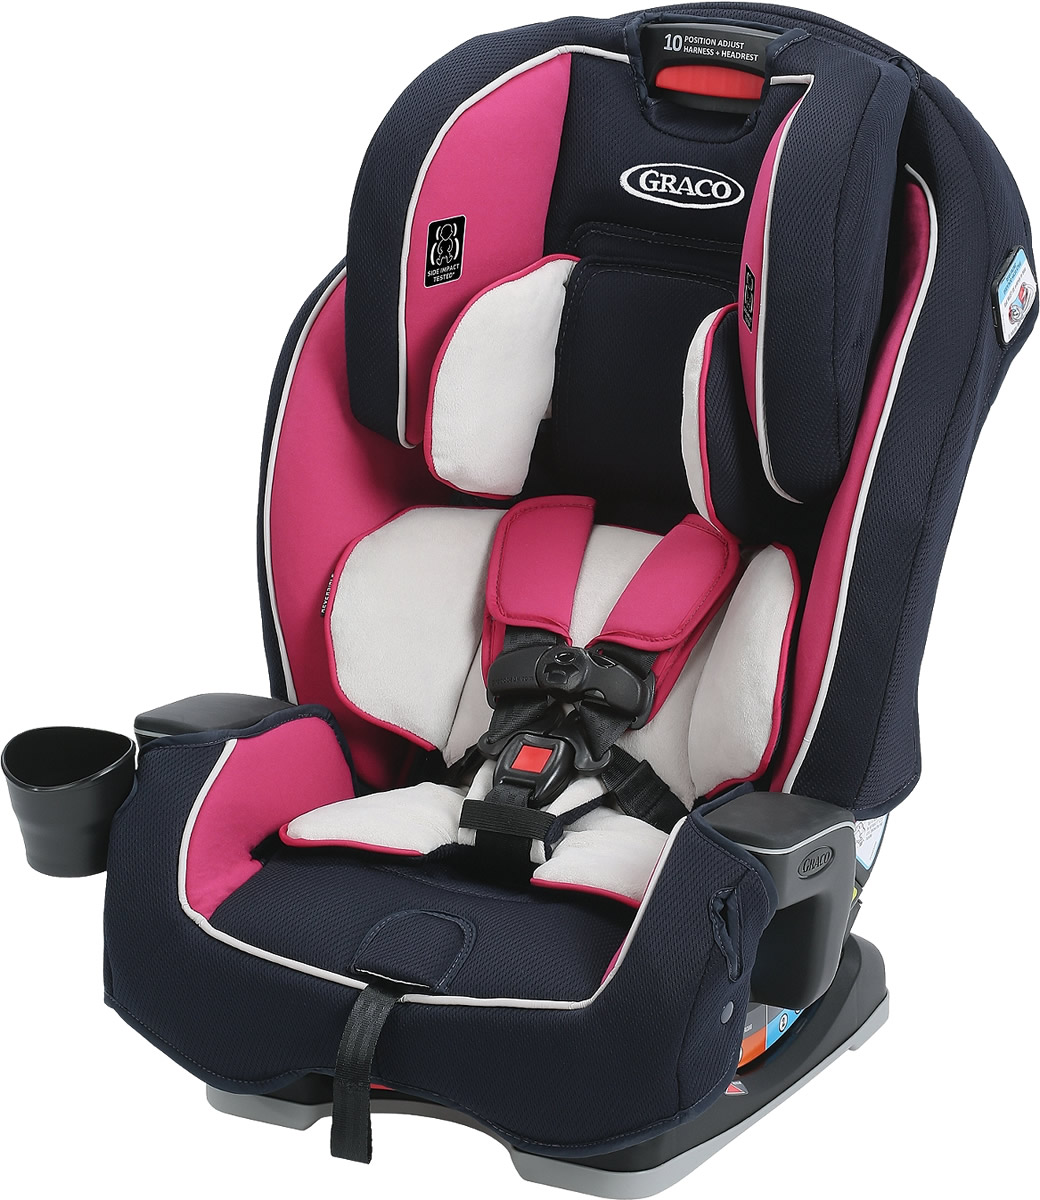 Graco Milestone All-in-One Convertible Car Seat - Ayla